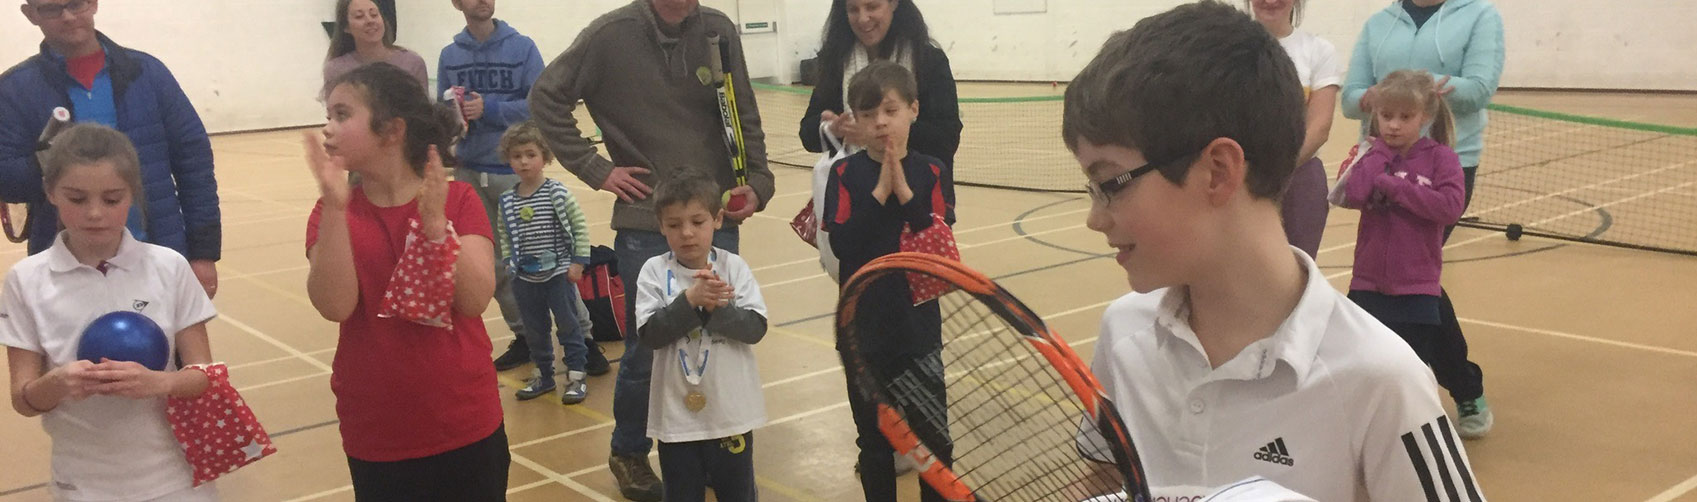 York Tennis Club Junior Beginners